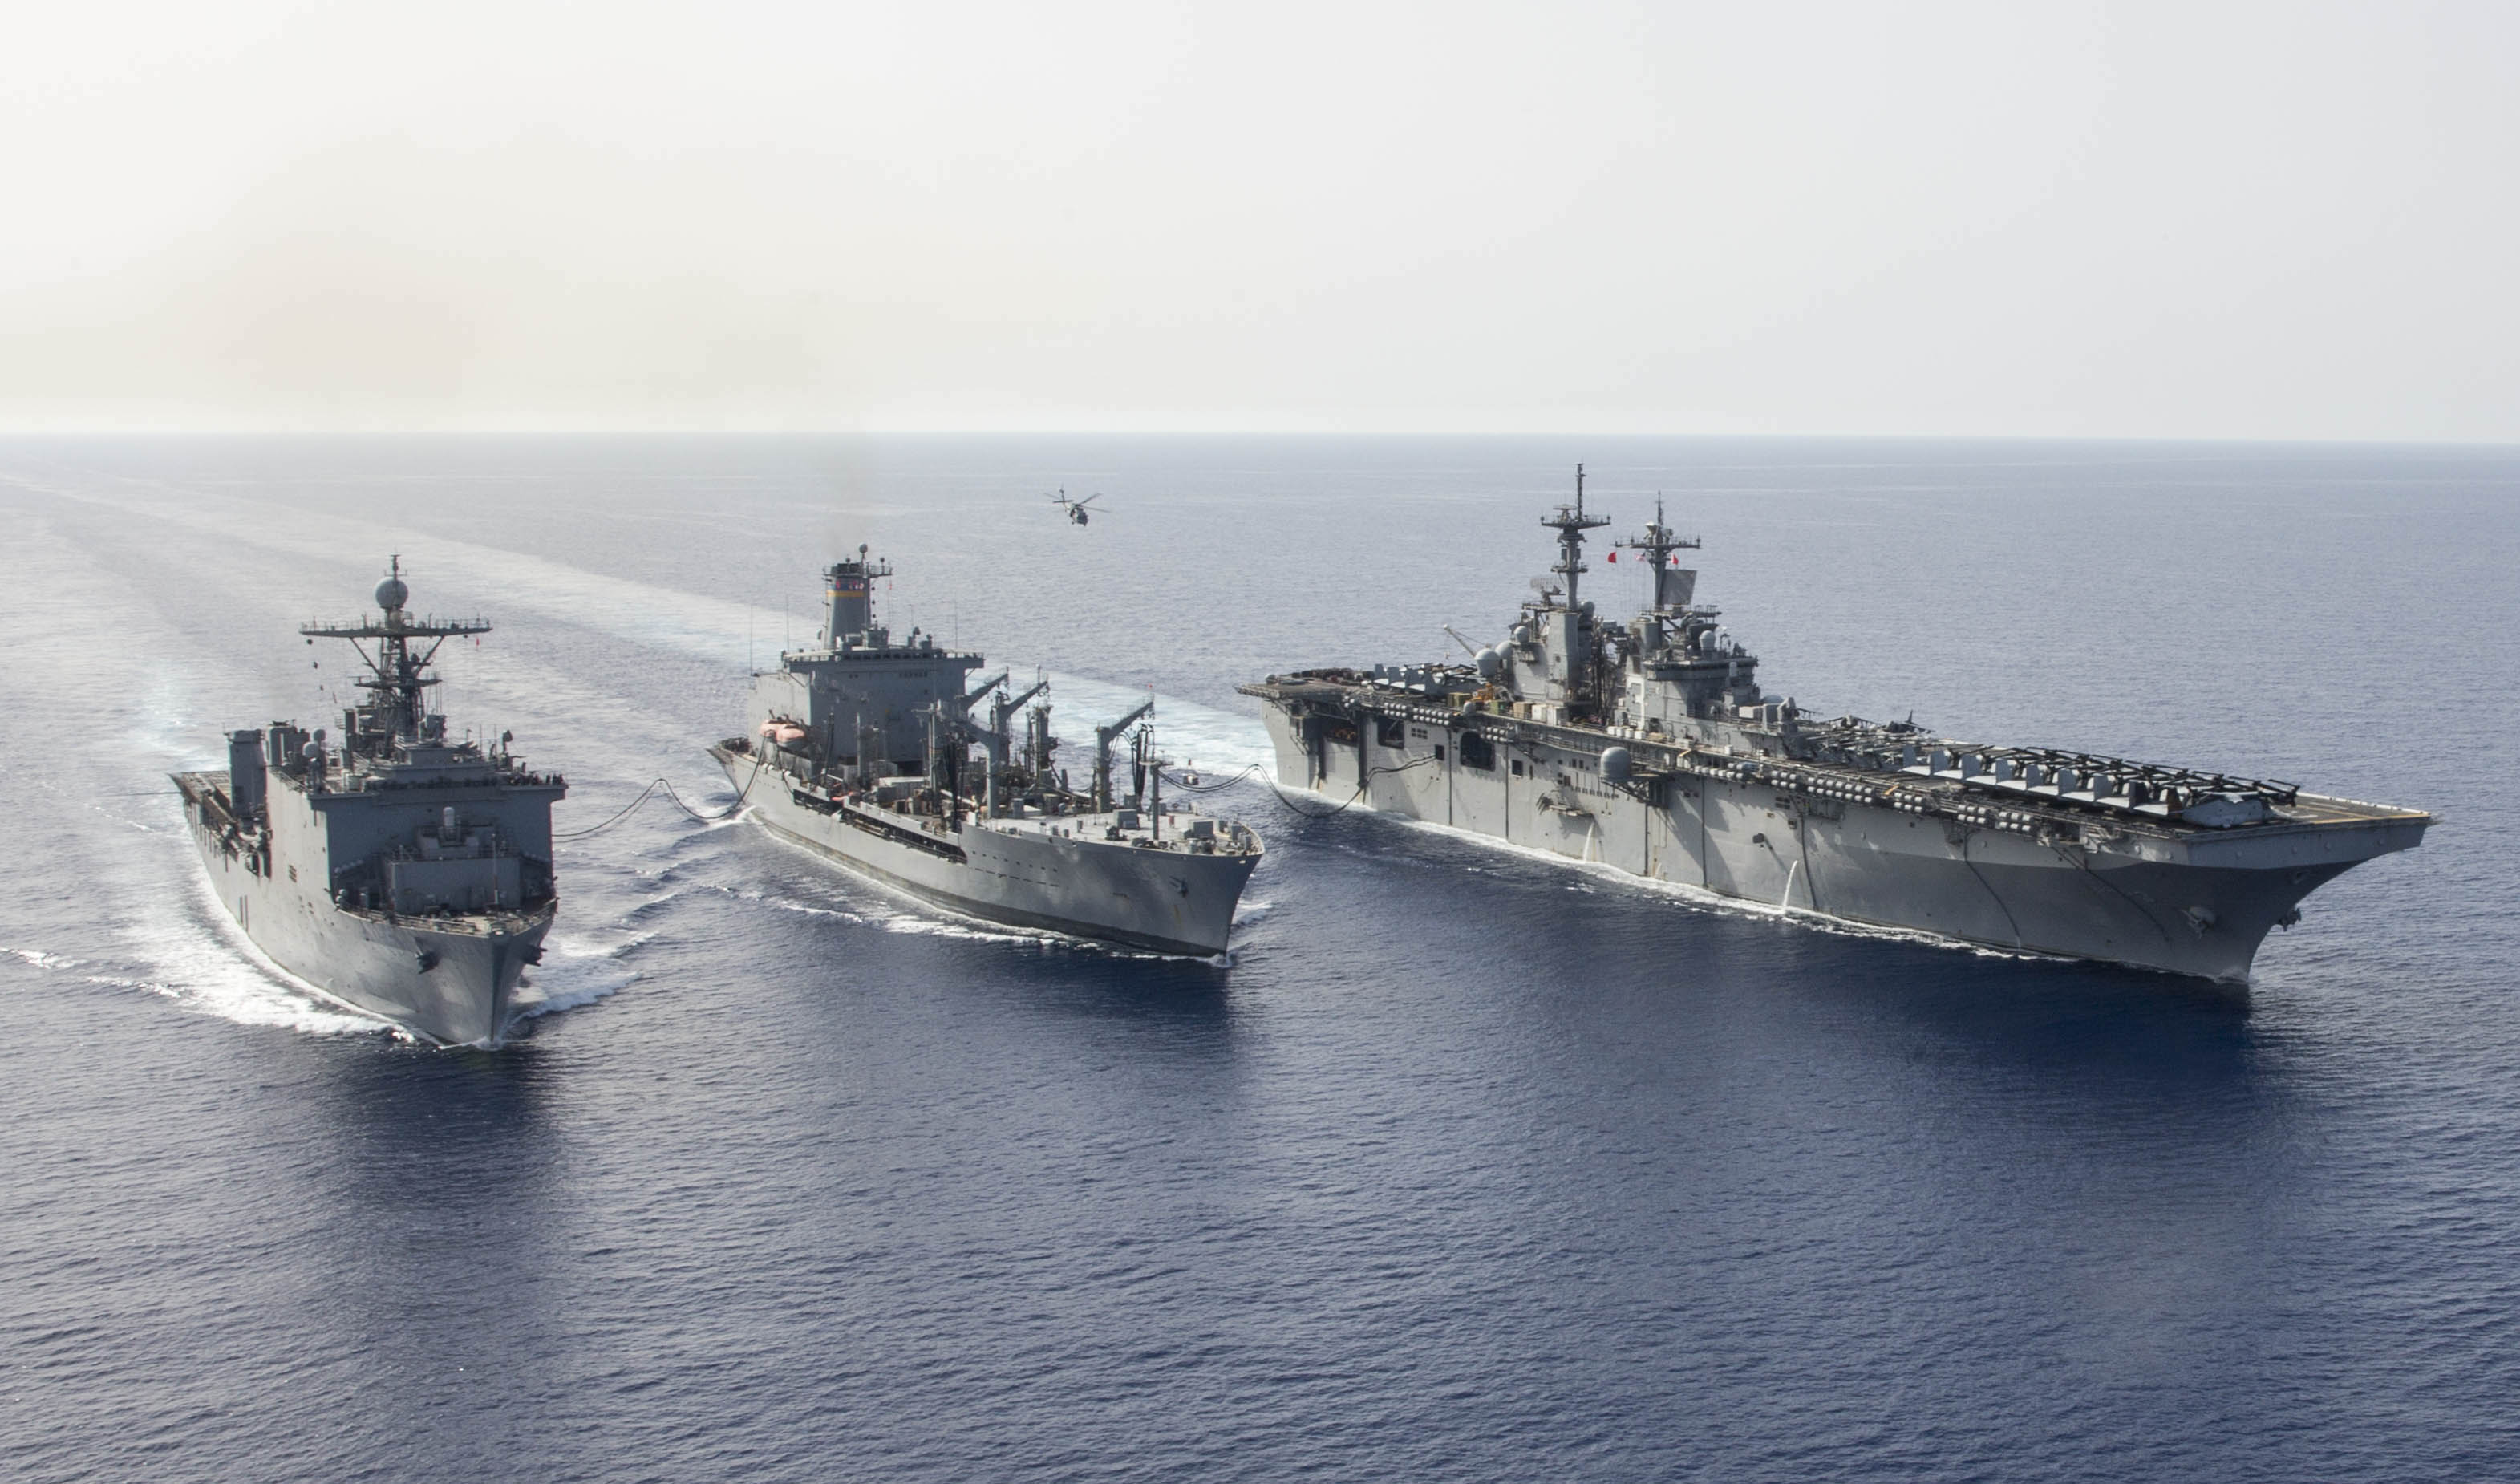 USS Kearsarge (LHD-3) (right) and the amphibious dock landing ship USS Oak Hill (LSD-51) (left) transit alongside the Military Sealift Command fleet replenishment oiler USNS Kanawha (T-AO-196) on April 7, 2016. US Navy Photo